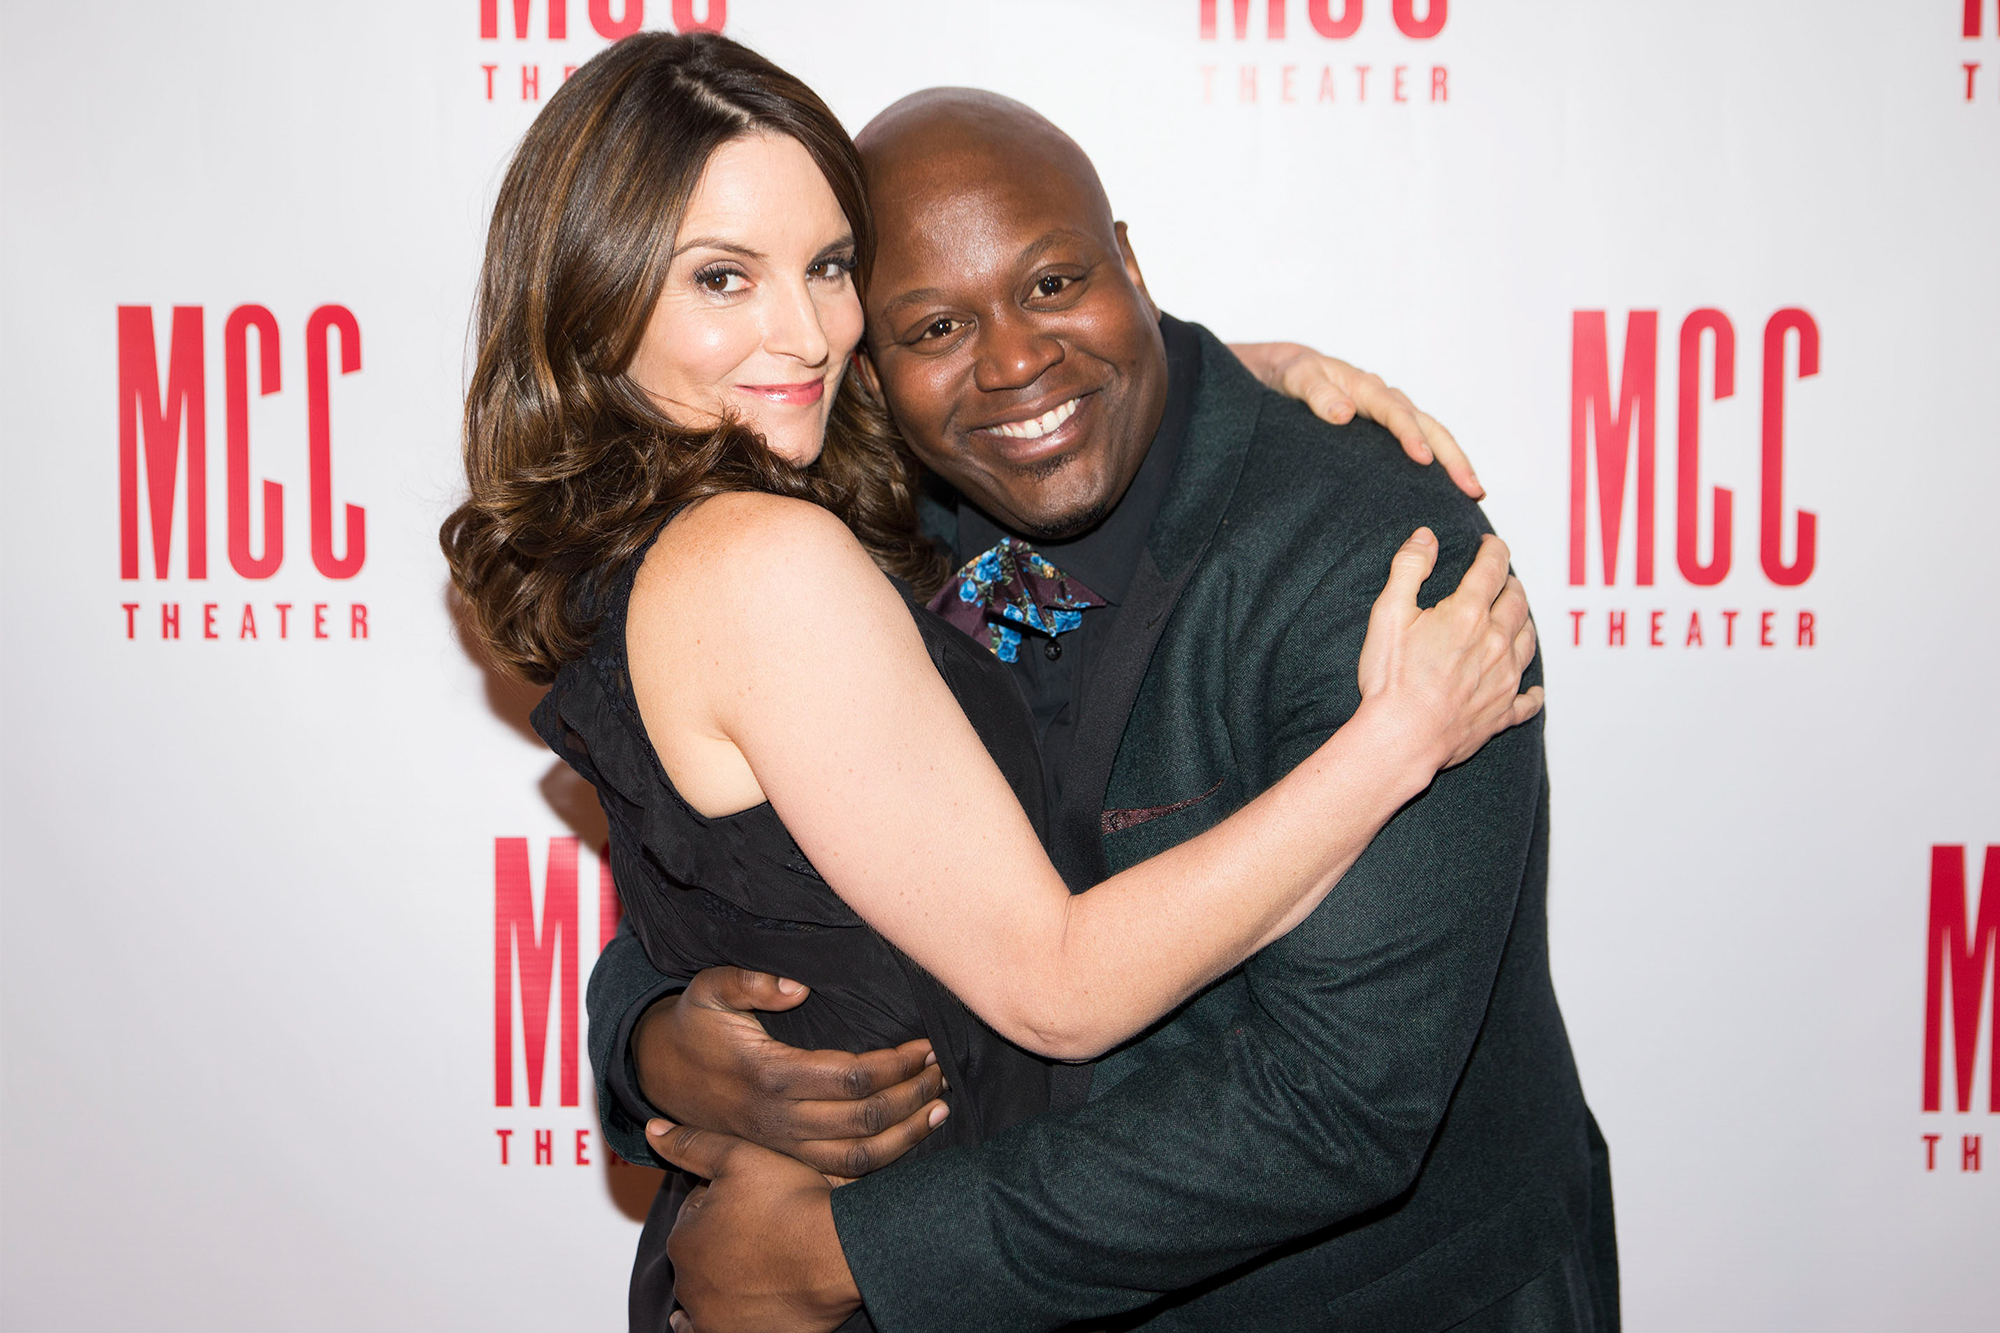 Tina Fey and Tituss Burgess